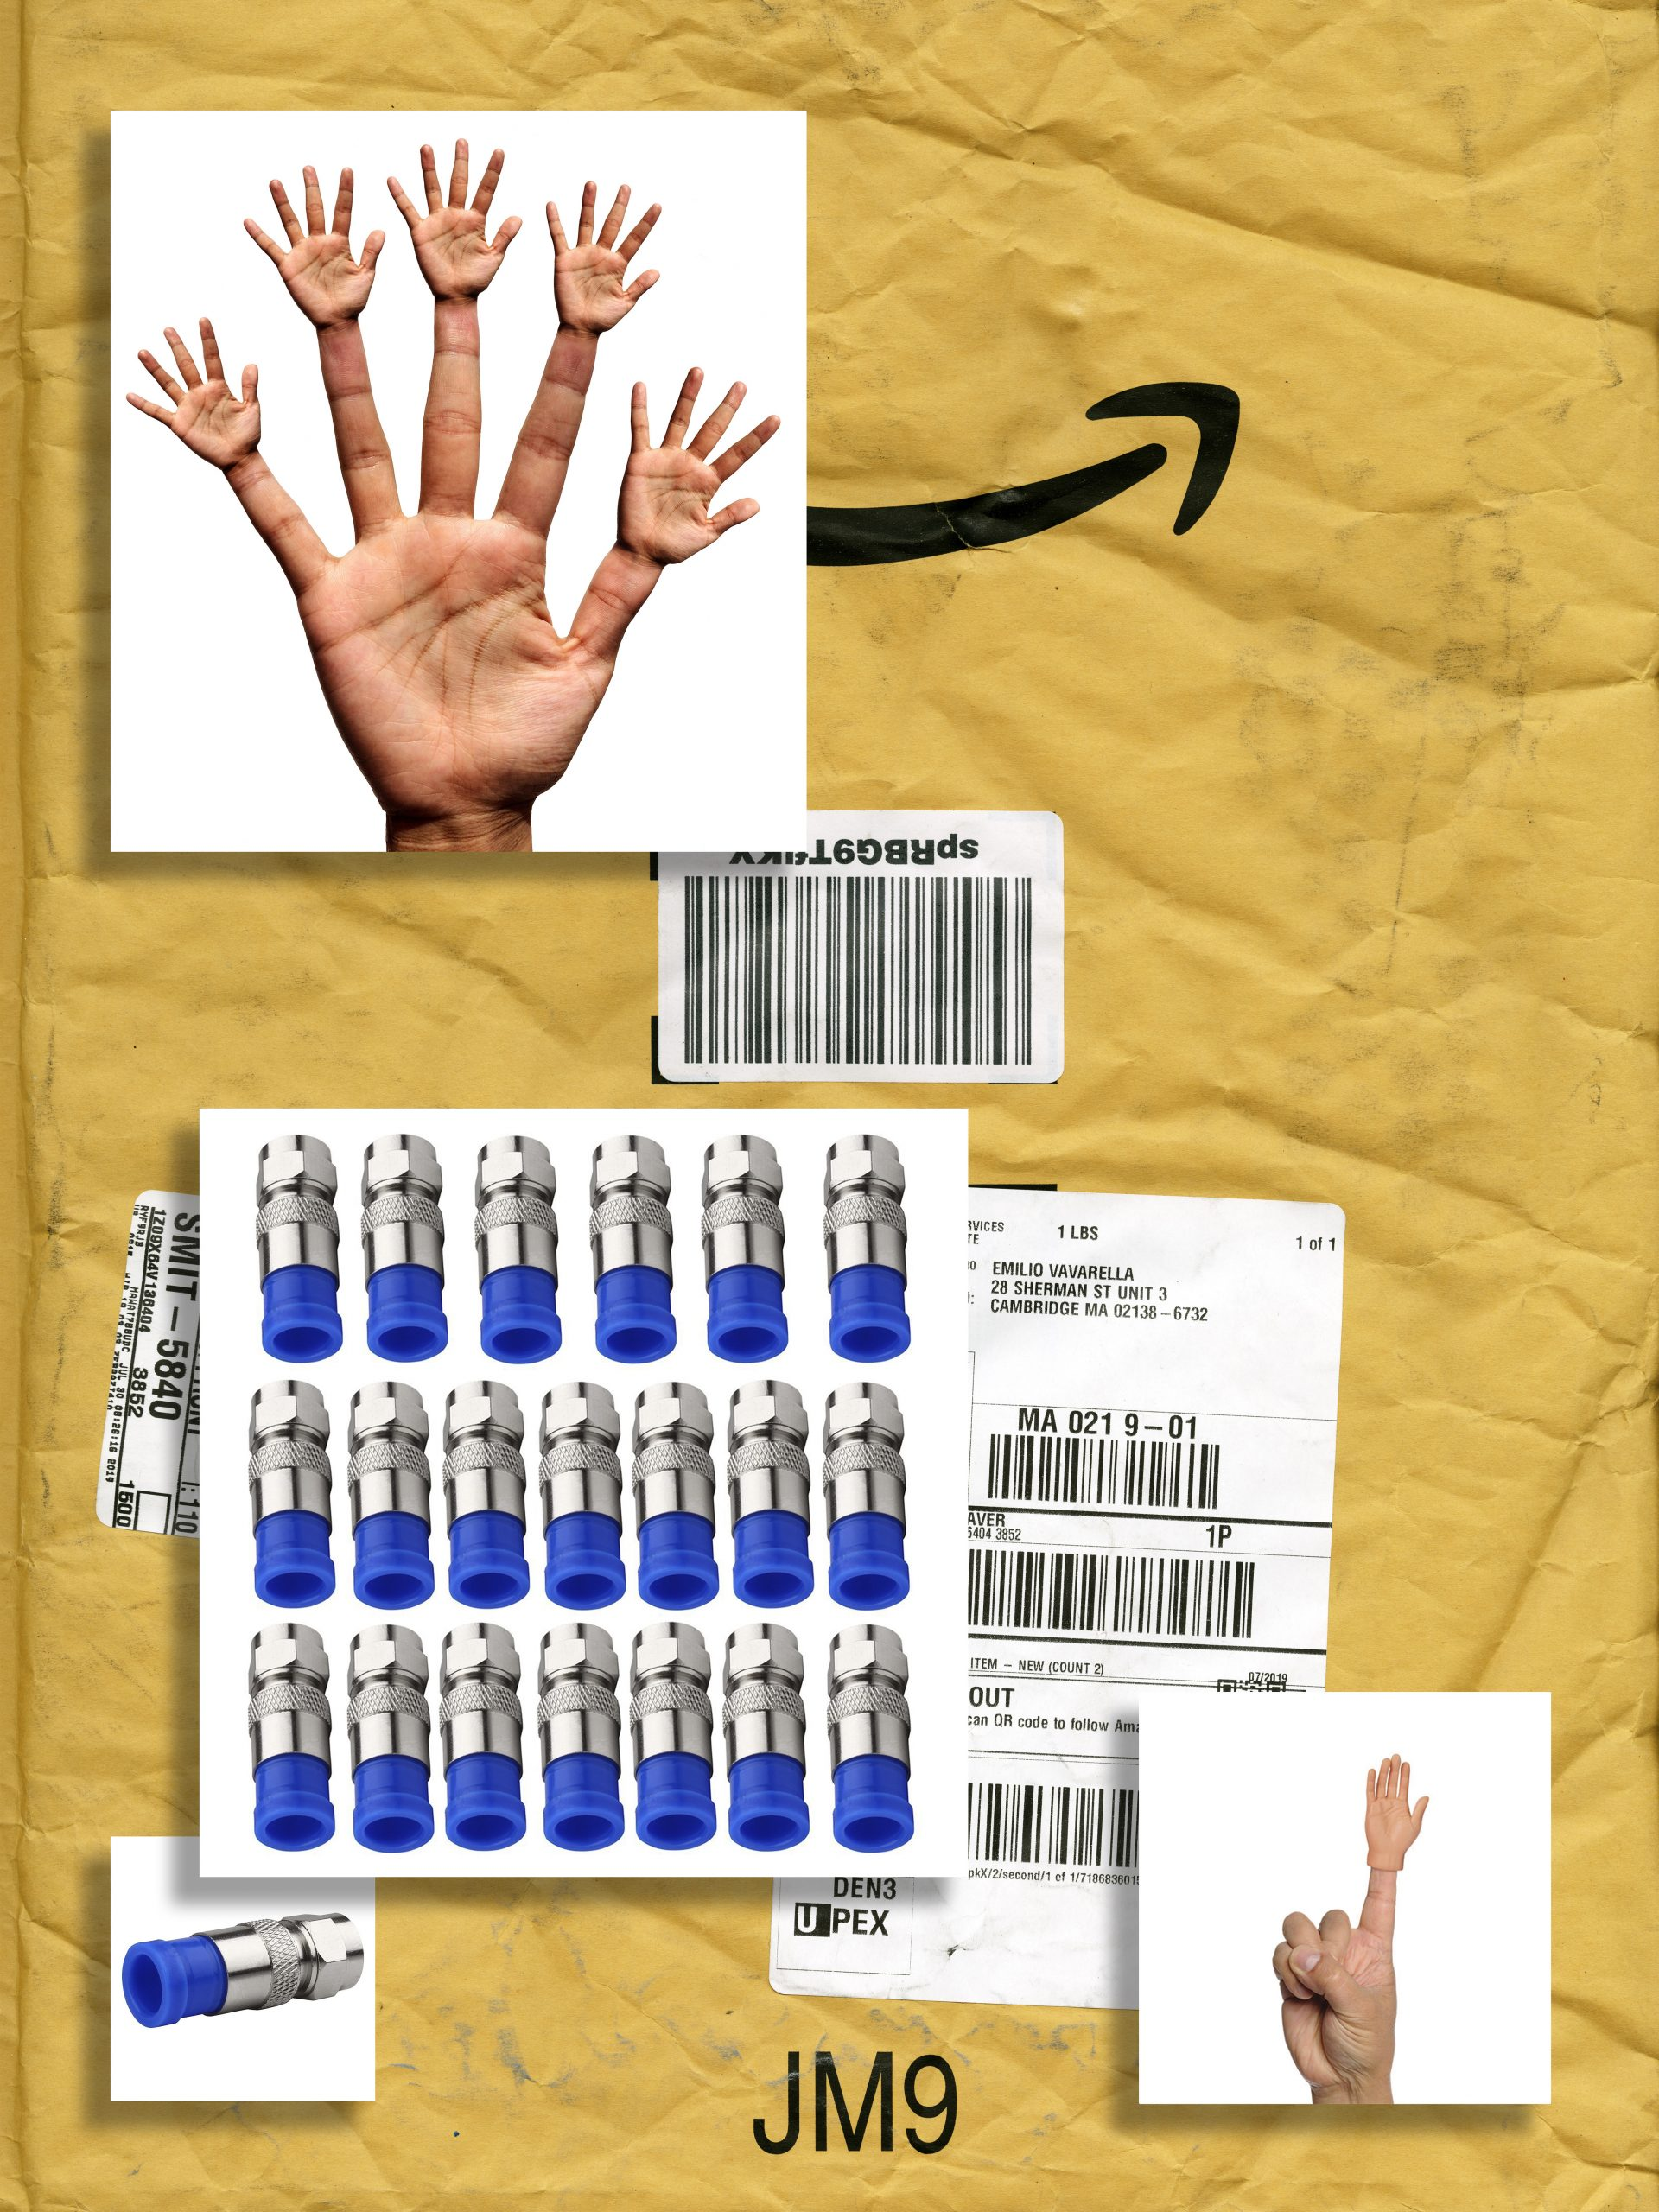 amazon rsquo s stravaganza a personal index of infinite consumption n17